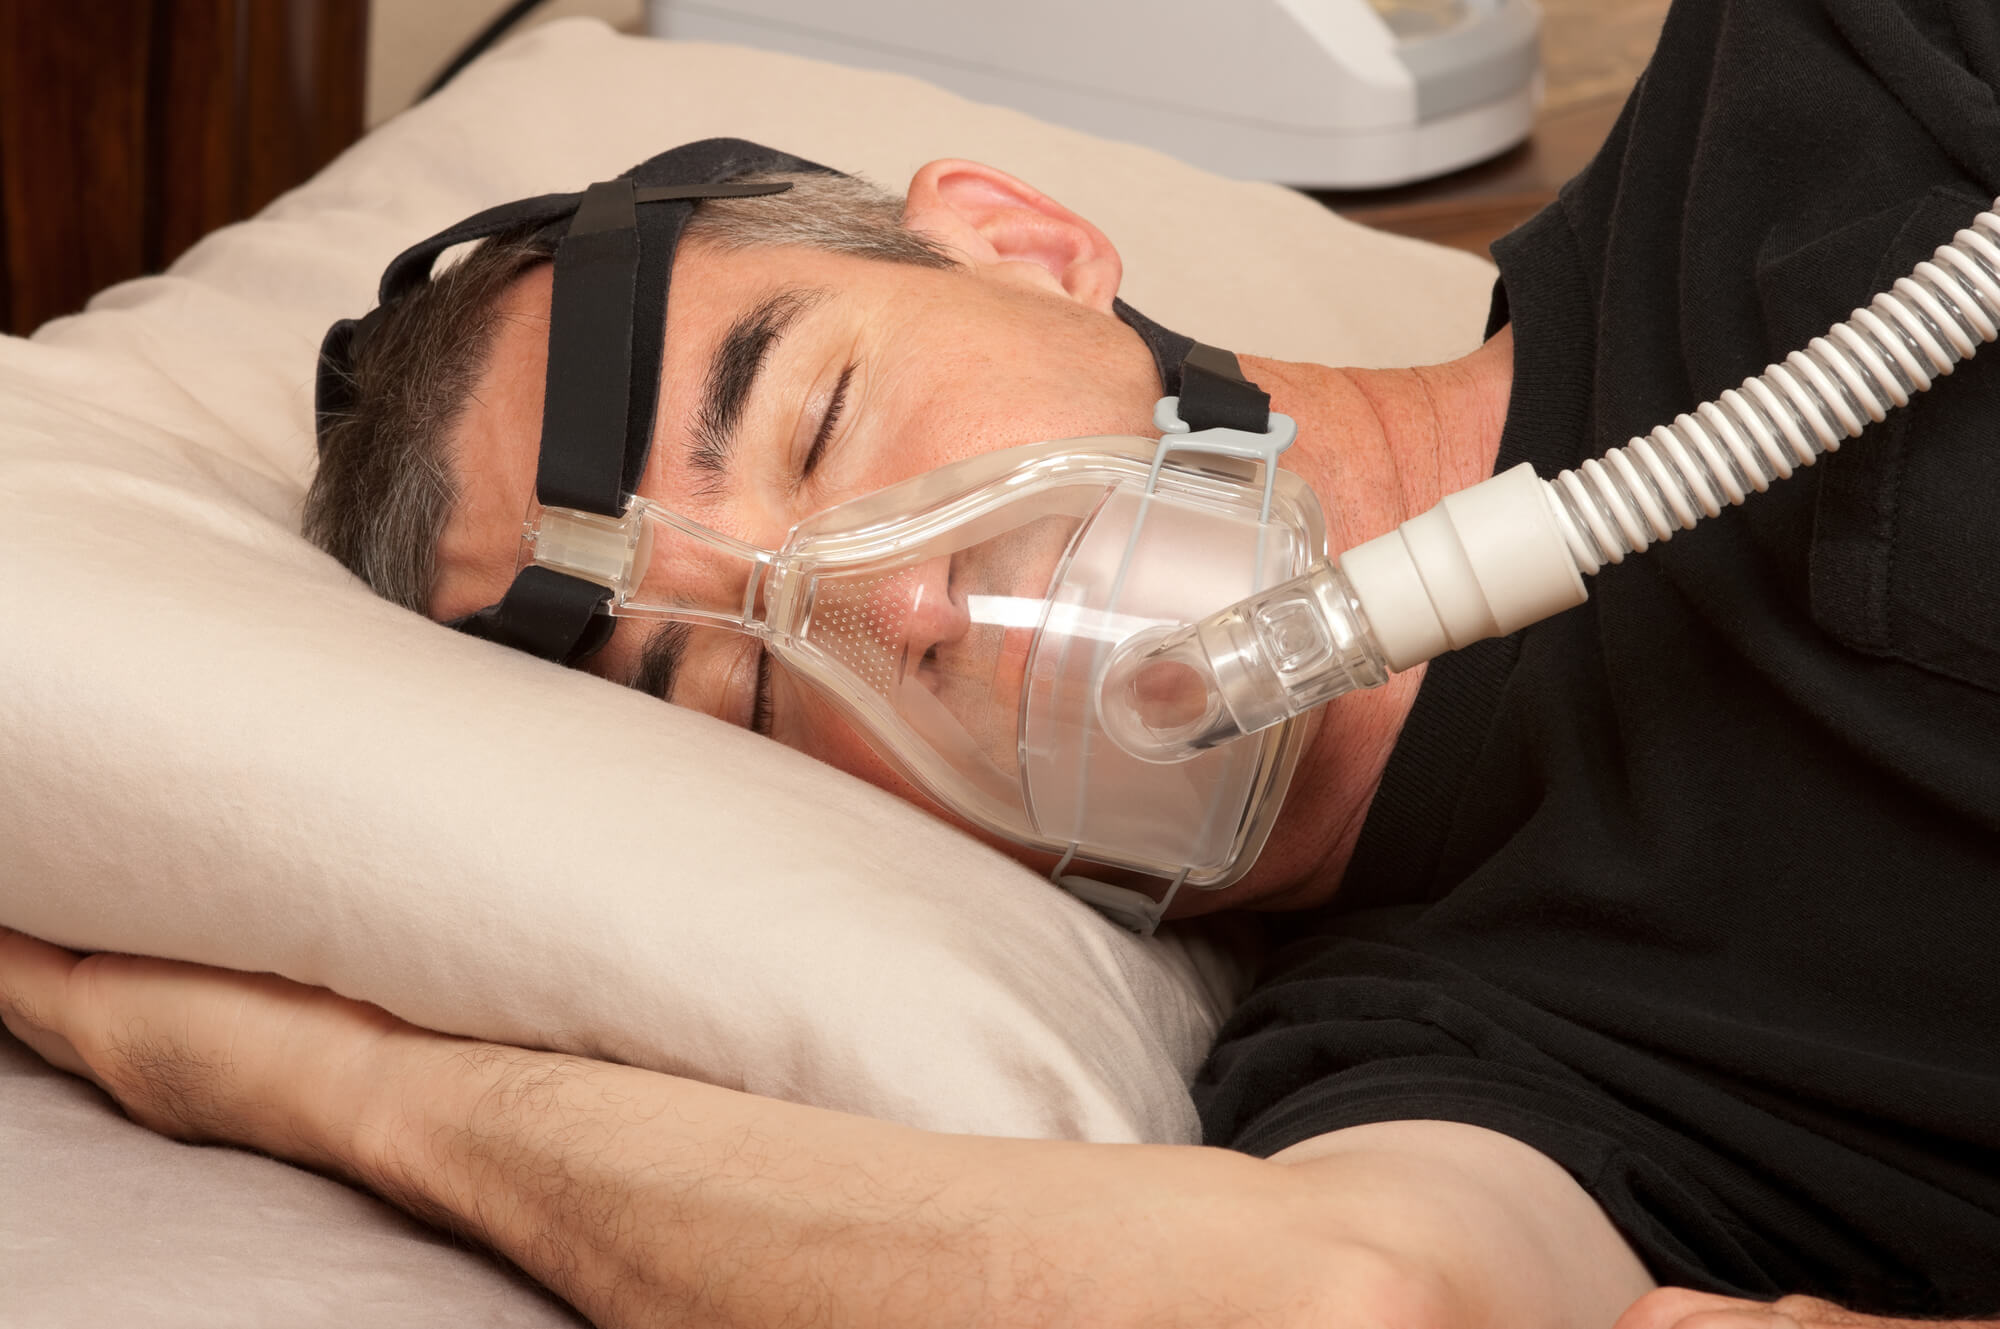 where is the best sleep apnea coral springs?